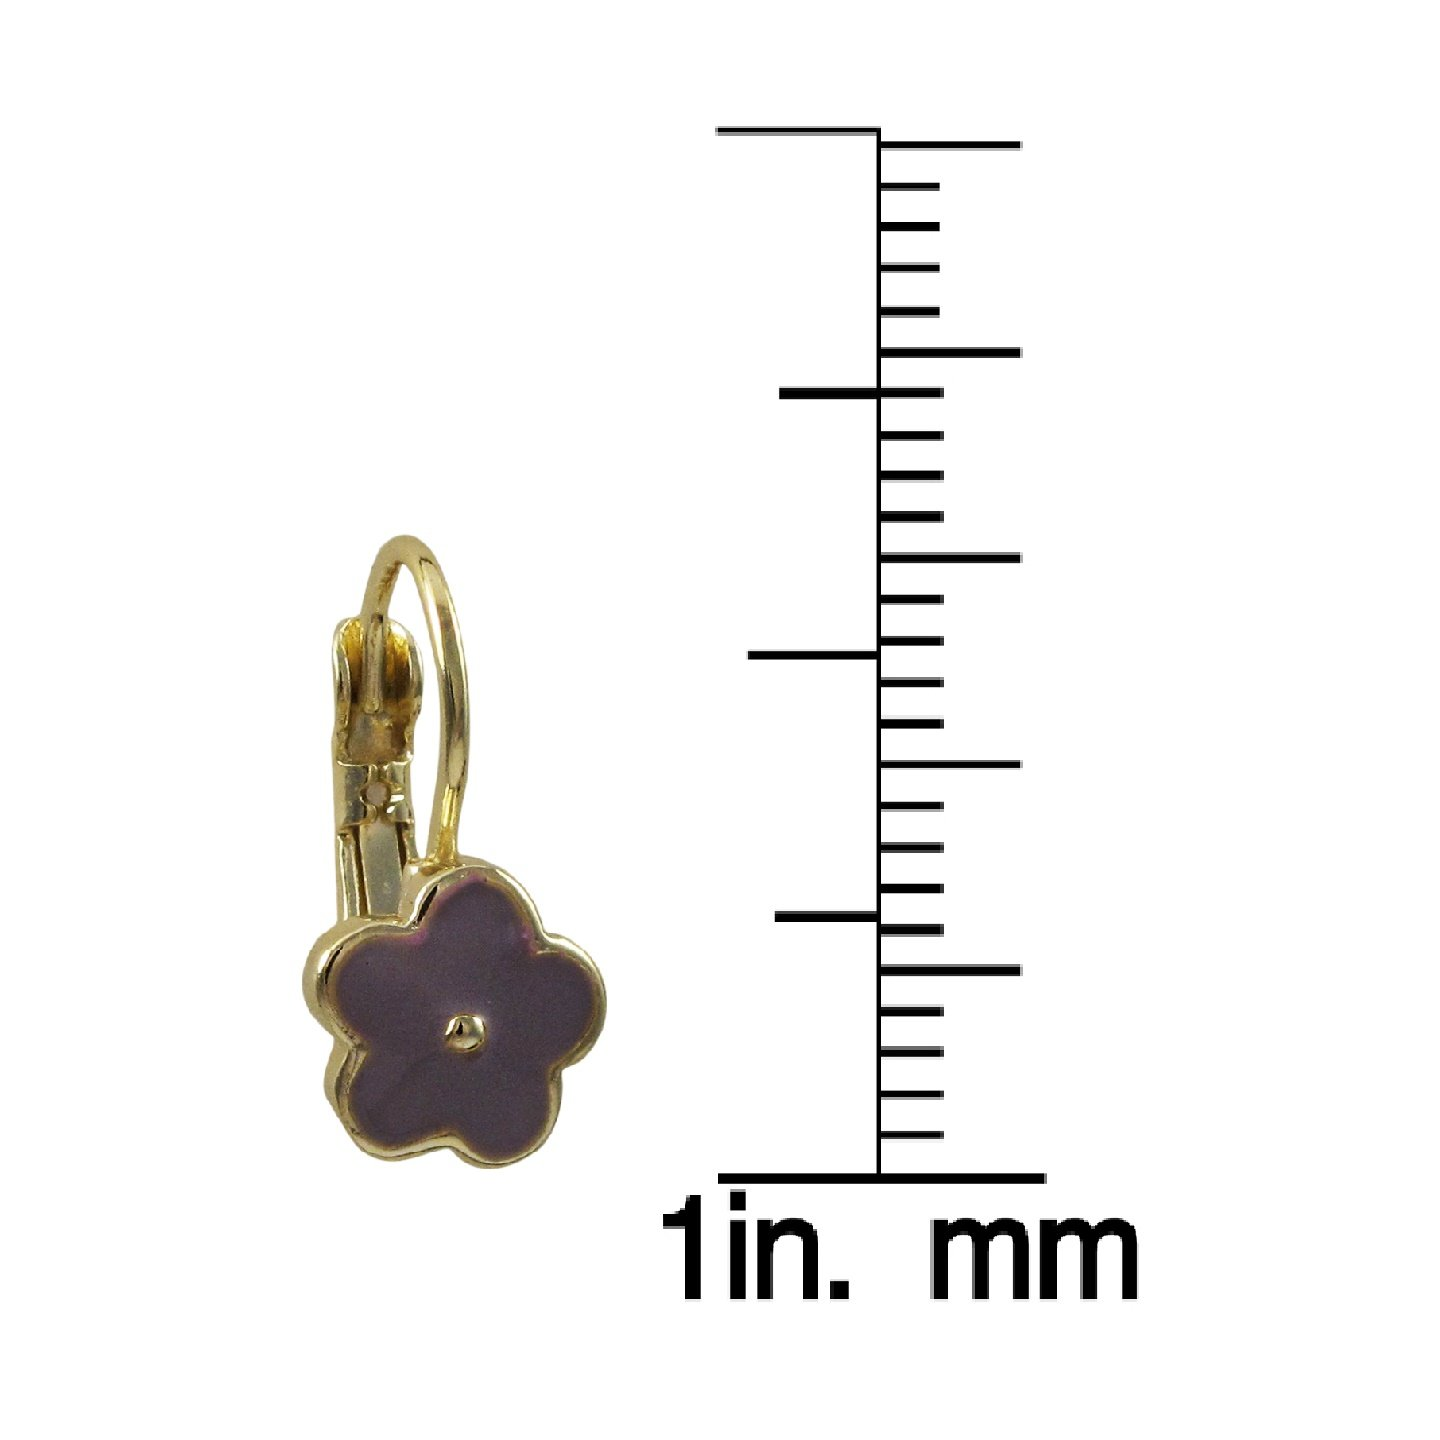 Ivy and Max Gold Finish Lavender Enamel Flower Girls Leverback Earrings